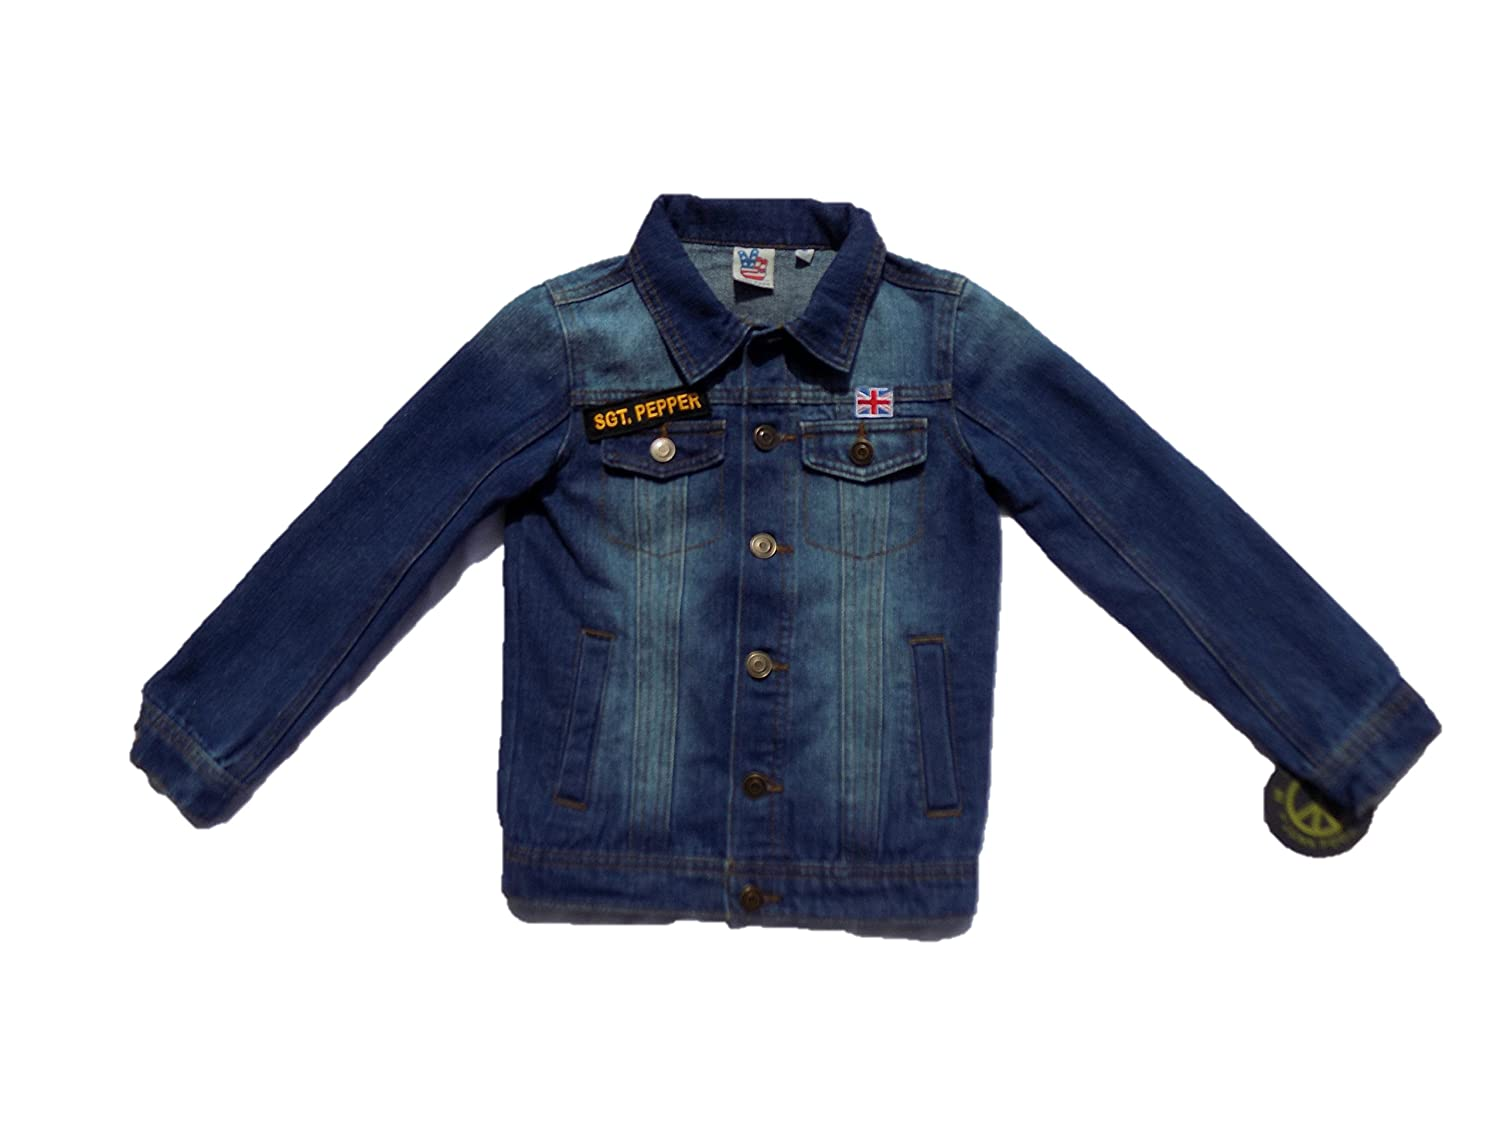 The Beatles SGT. Pepper Boys' Navy Denim Jacket